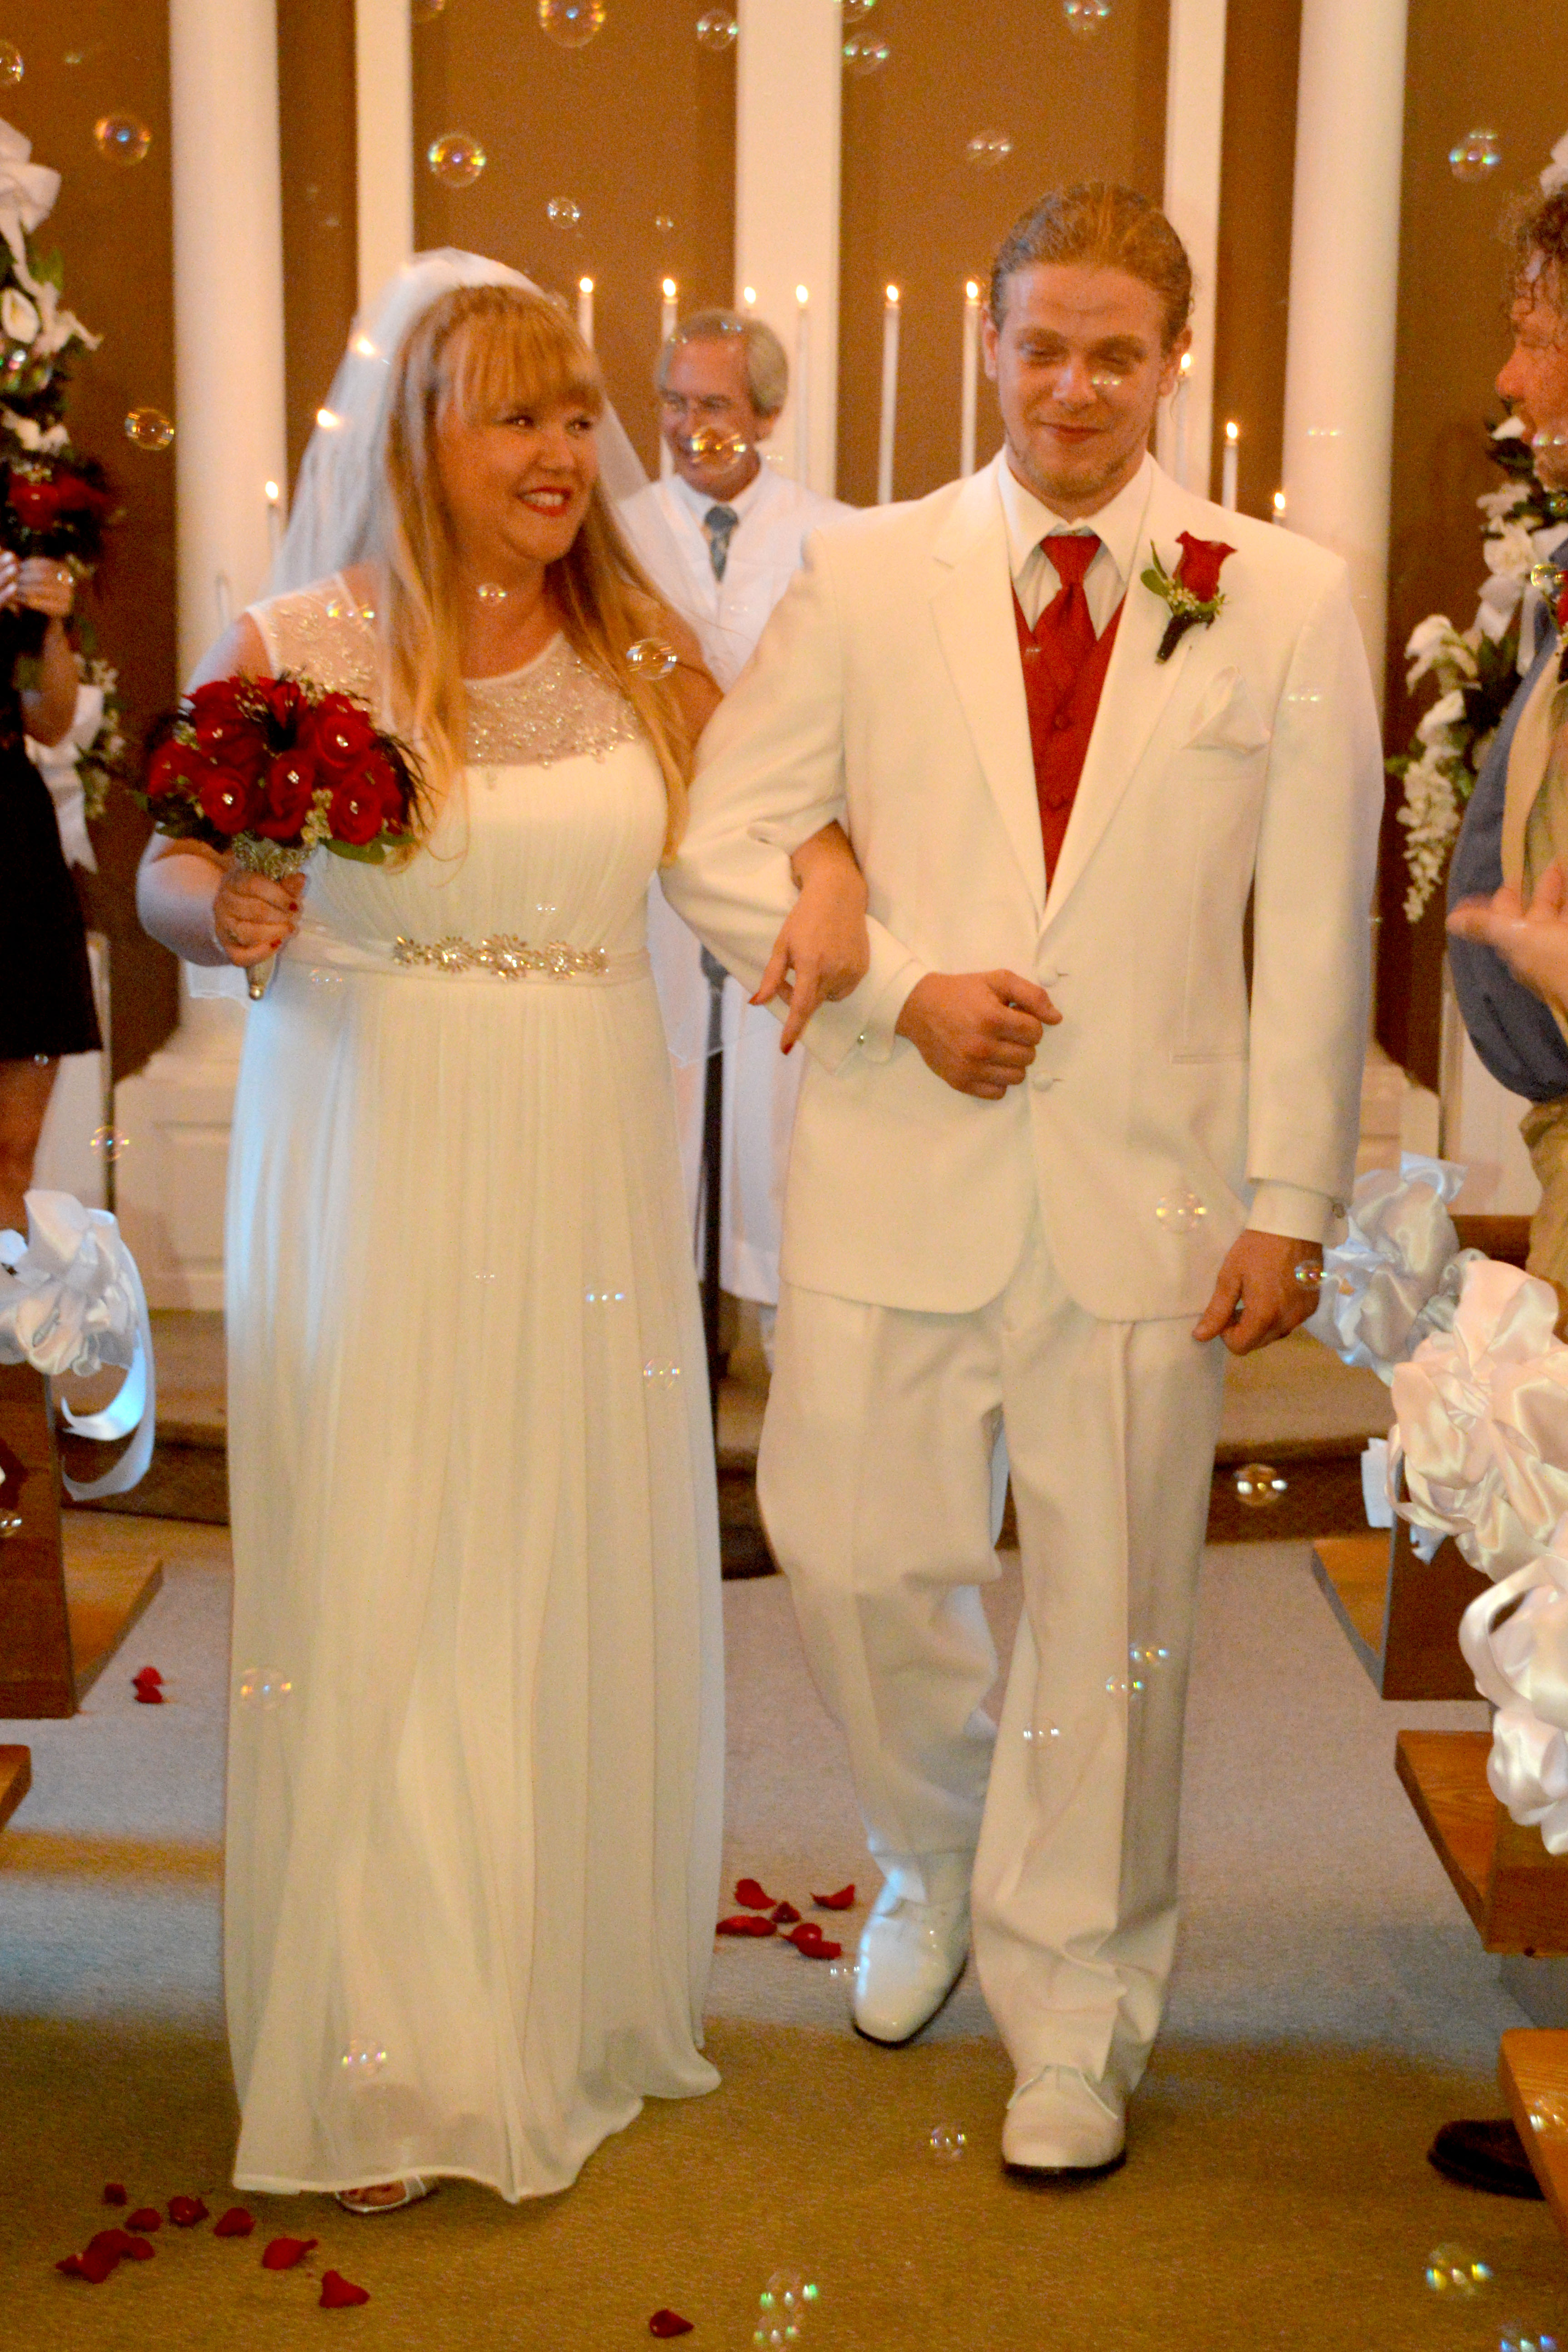 Desiree Green And Steven Fleckenstein Were United In Marriage On August 21 2015 The Chapel At Wedding By Sea South Carolina Rev